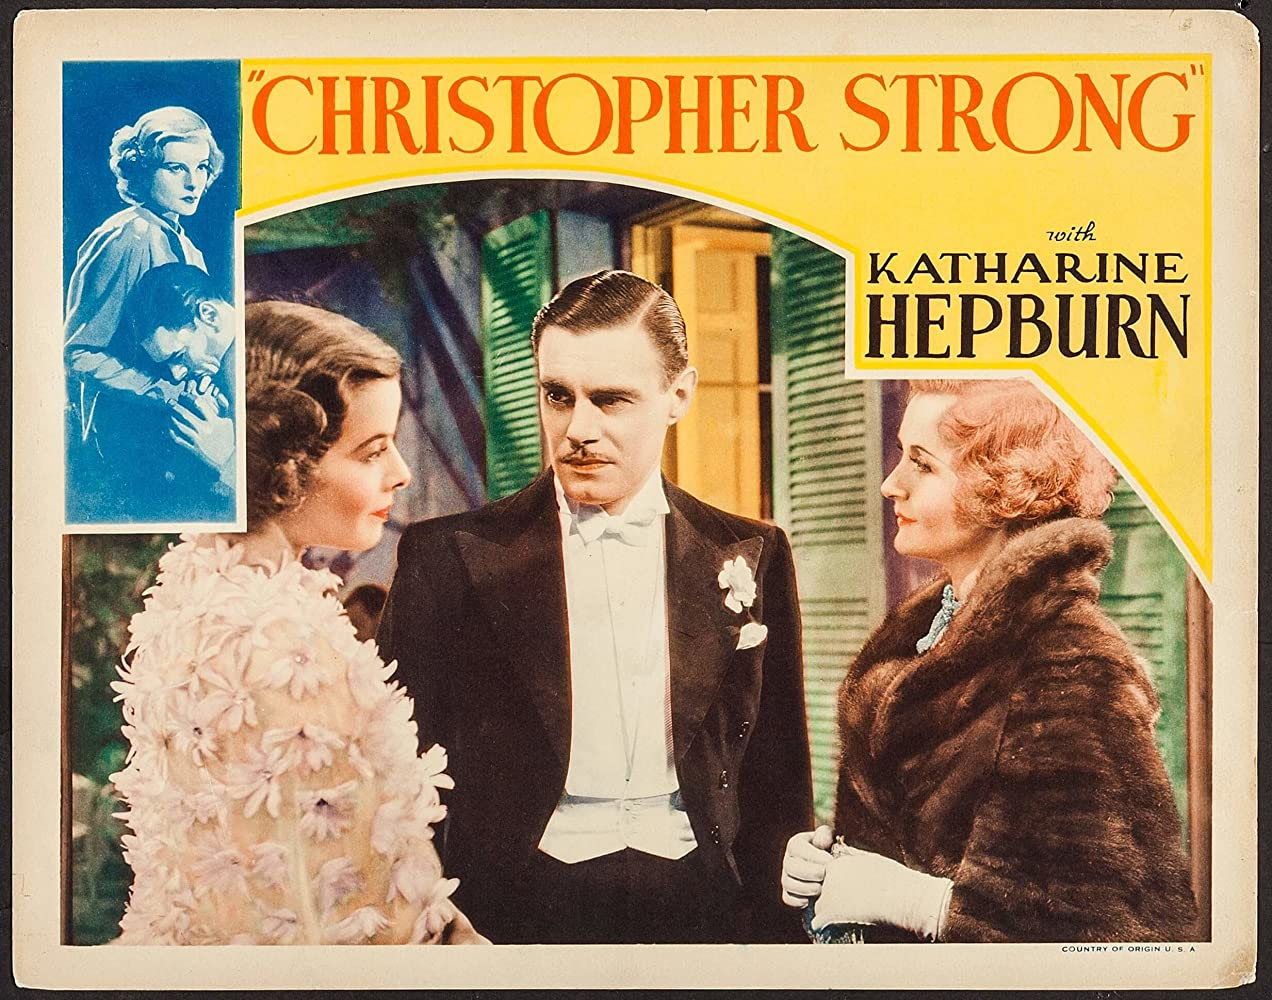 Katharine Hepburn, Billie Burke, and Colin Clive in Christopher Strong (1933)